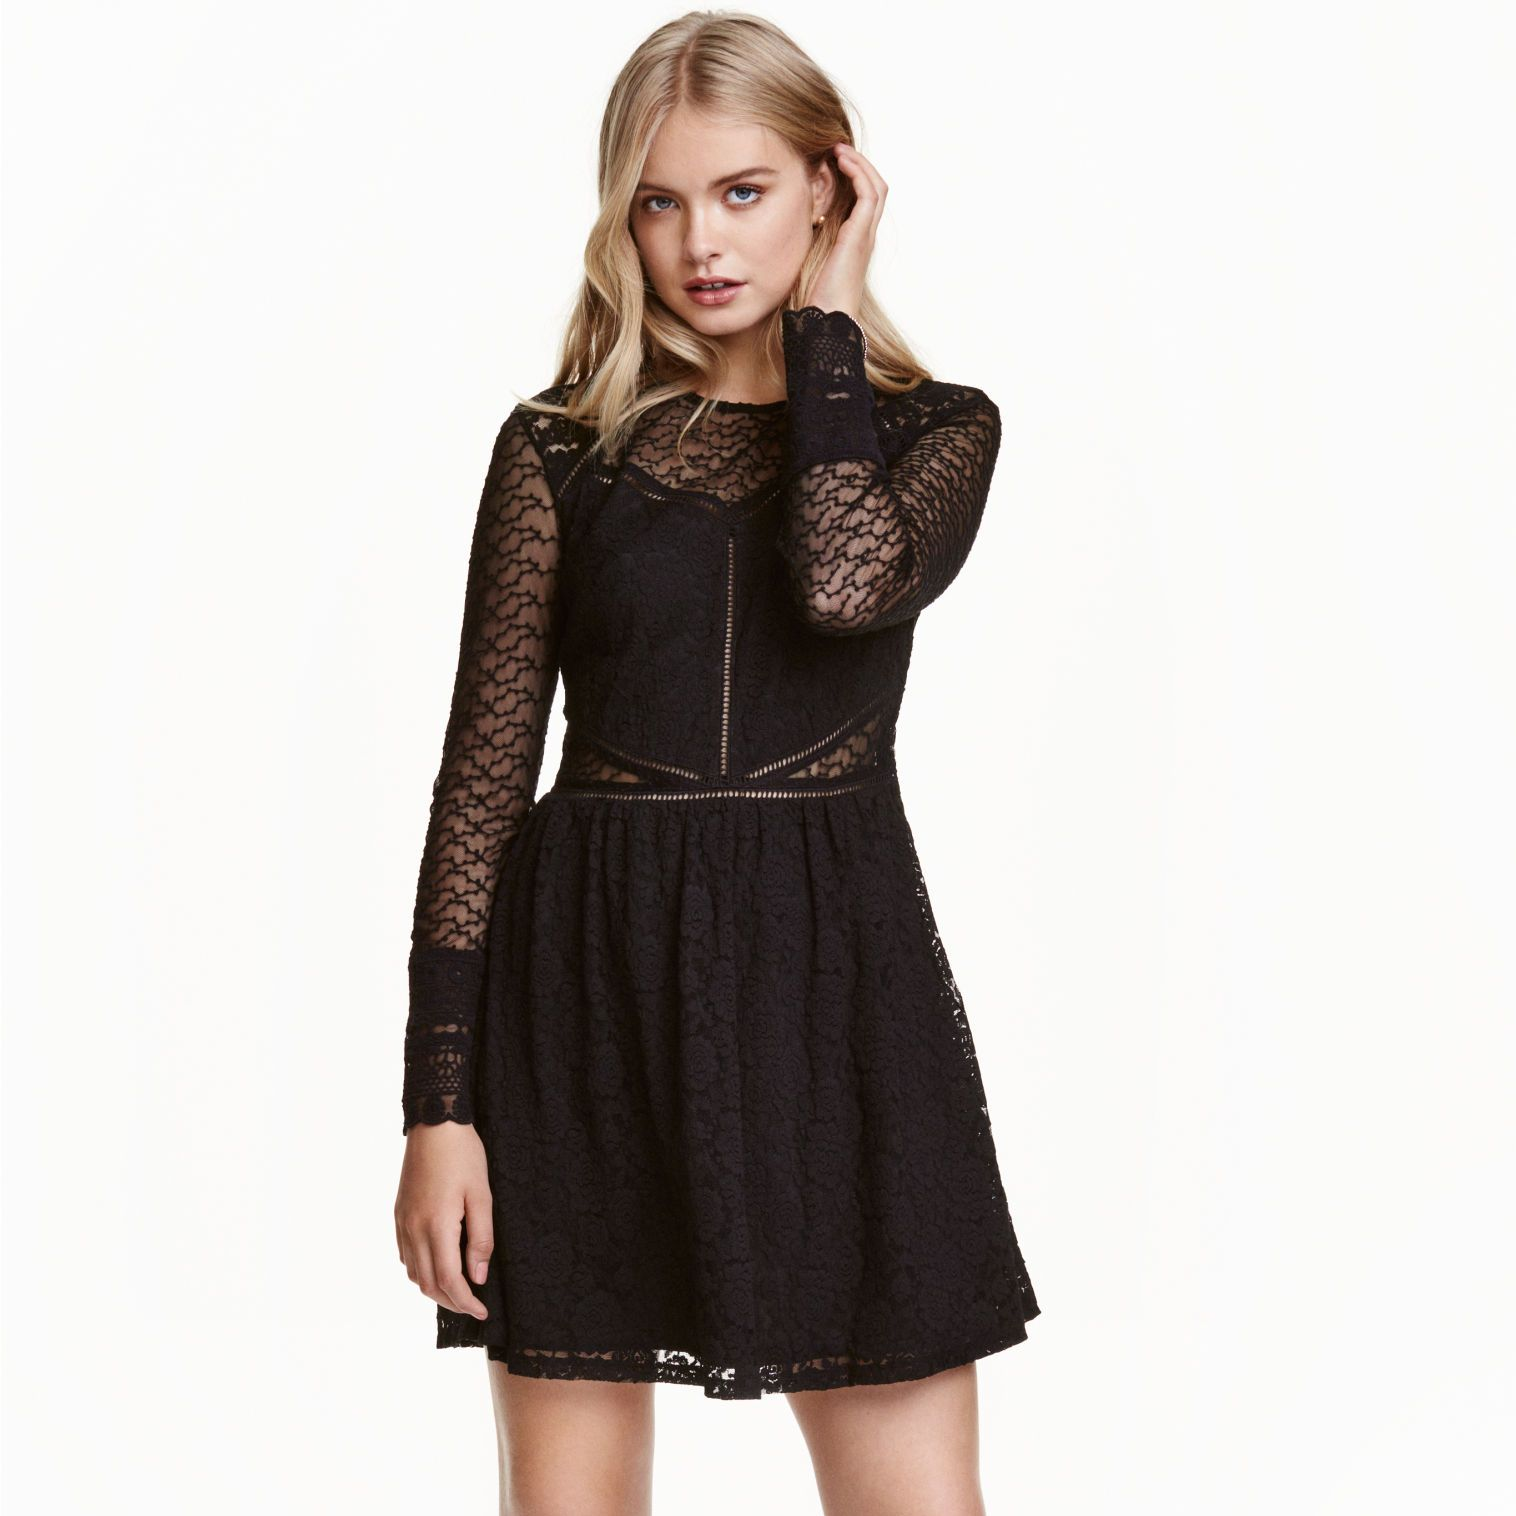 "<p>This lace number has sheer cut-outs right around the waist which draws the eye in at your favourite asset.</p><p><a href=""http://www2.hm.com/en_gb/productpage.0417728003.html#"" target=""_blank"">Lace dress, £29.99, H&amp&#x3B;M</a></p>"